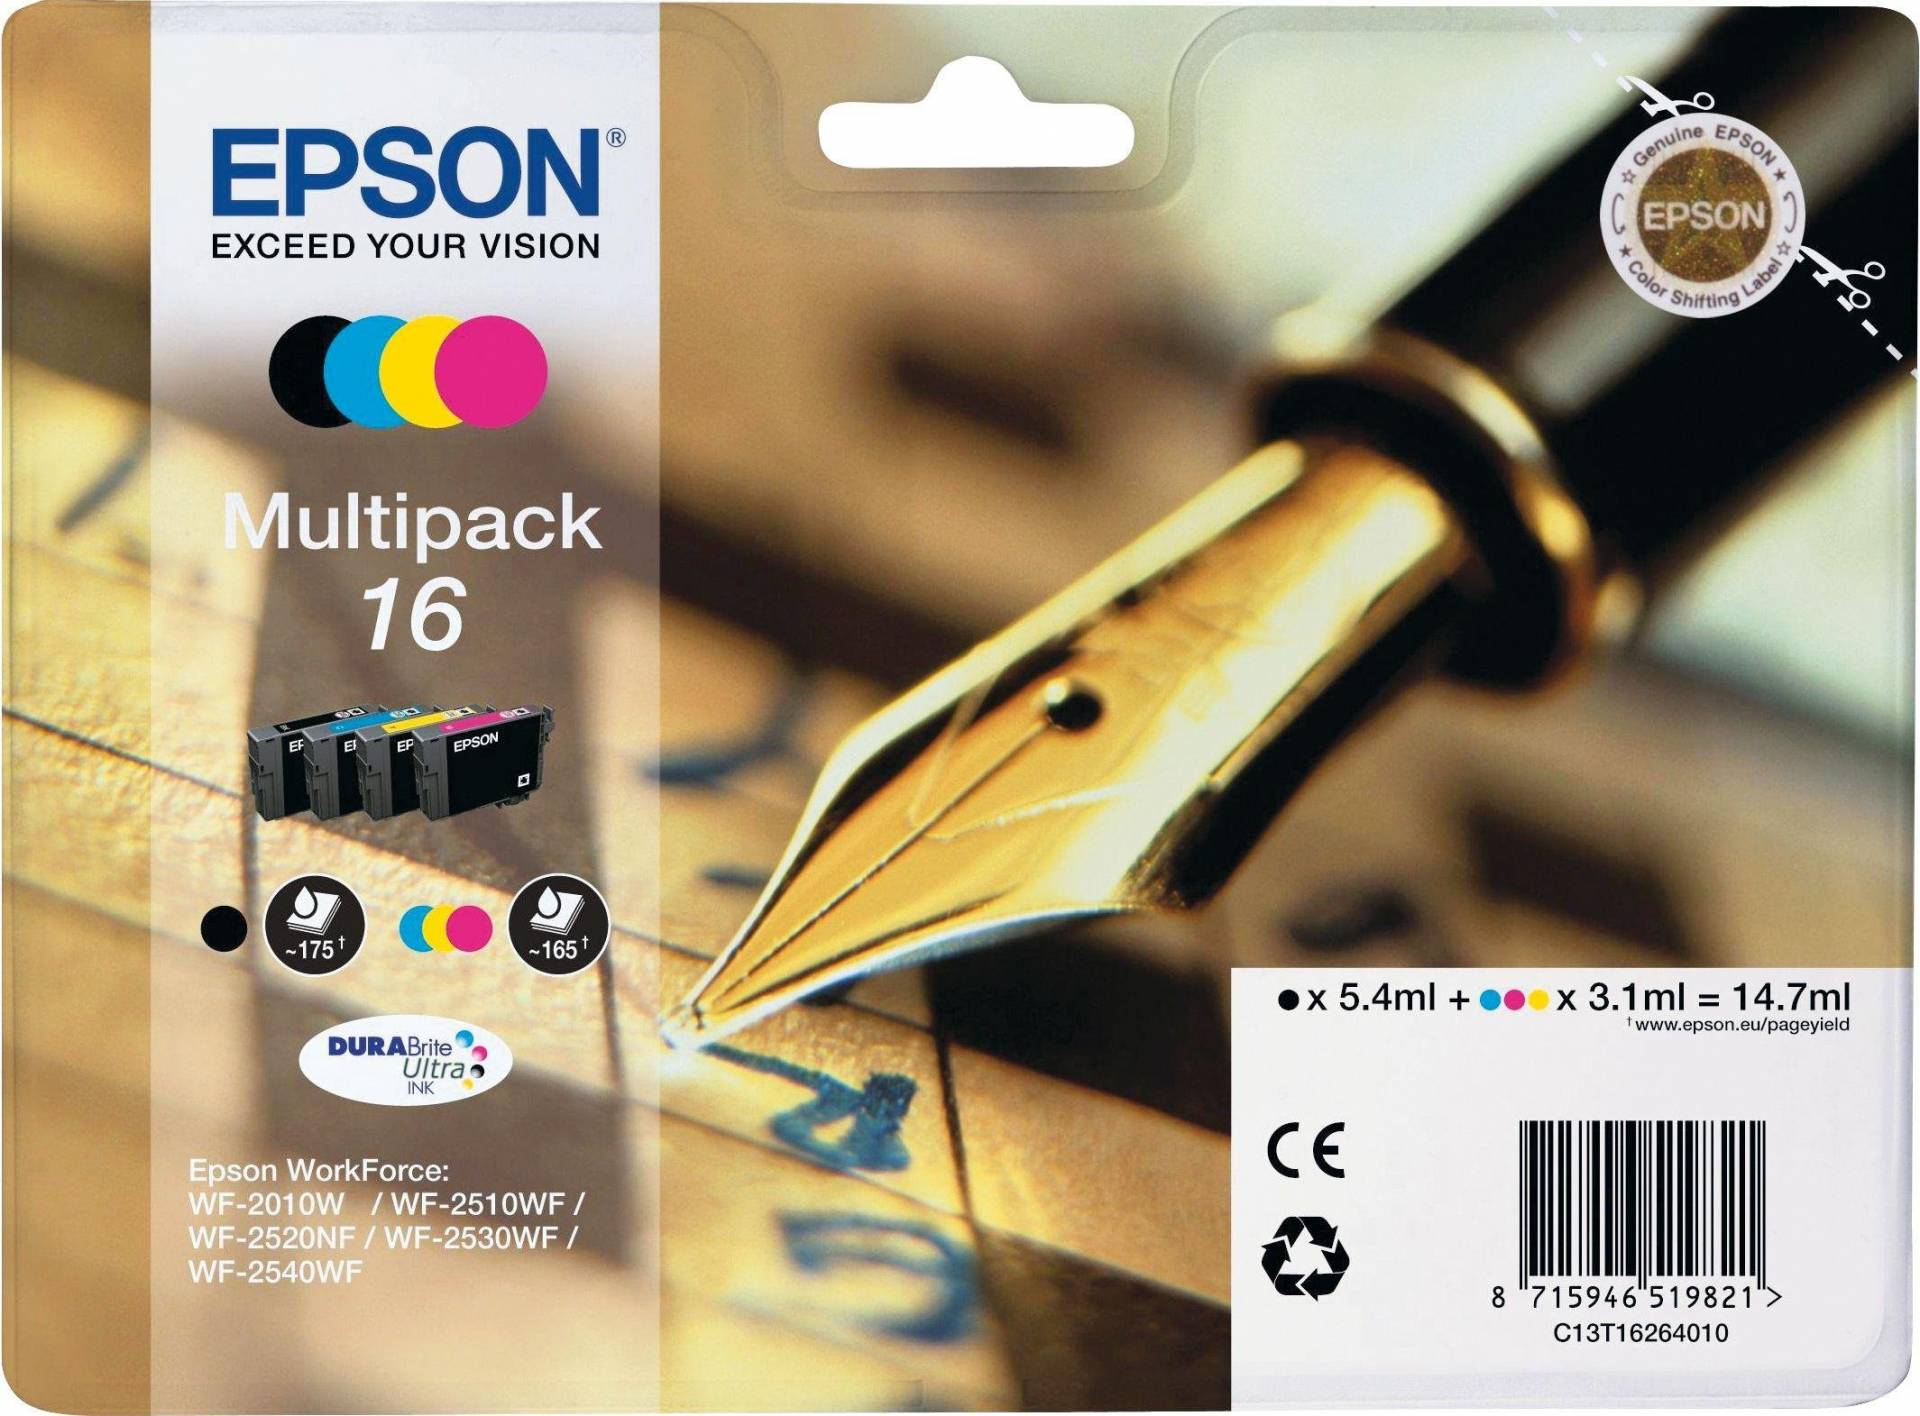 Epson Pen 16 Ink Cartridges Multipack from Epson